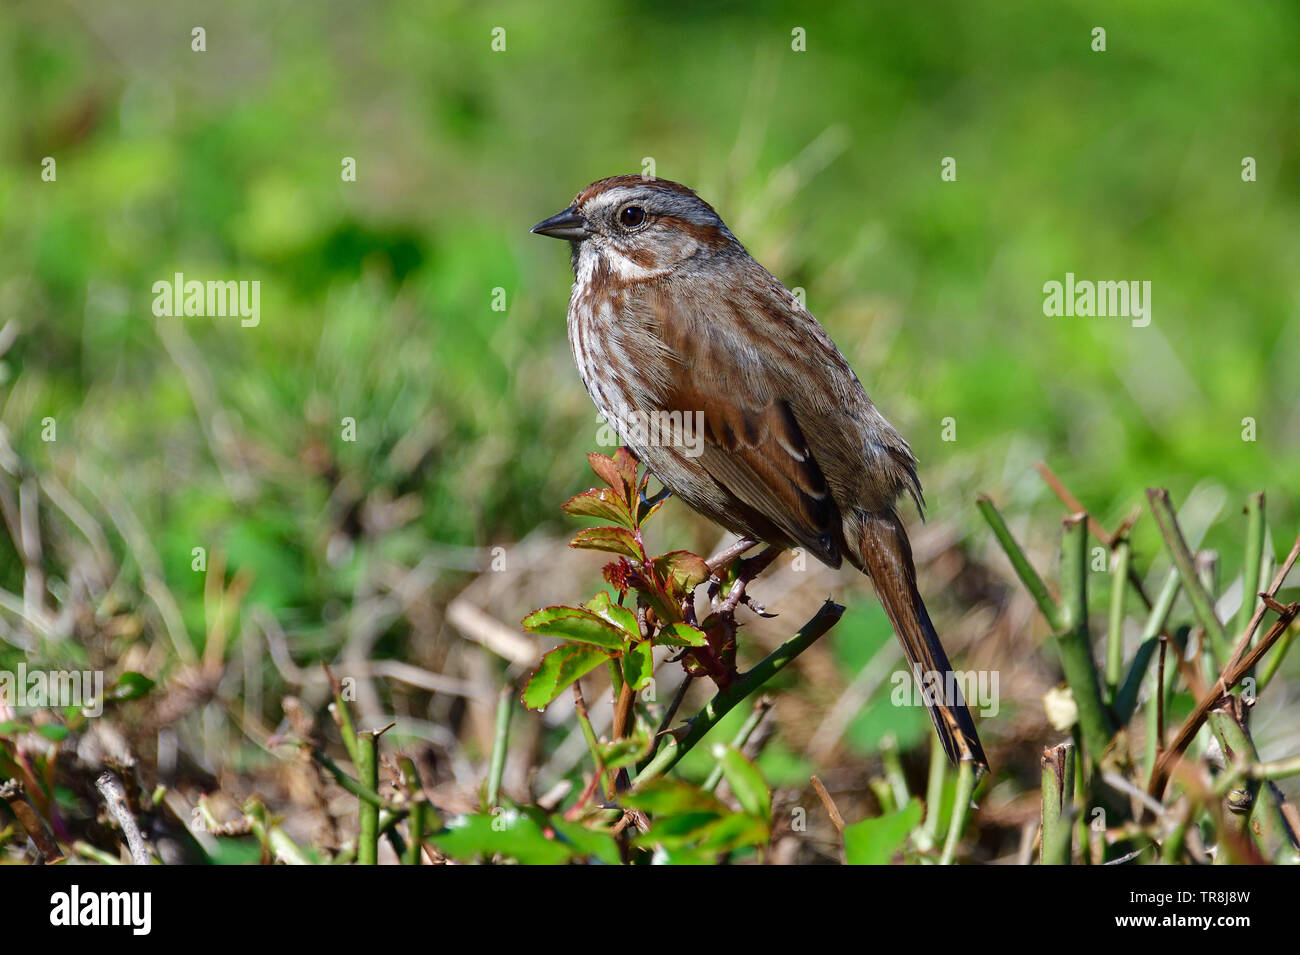 A wild song sparrow bird 'Melospiza melodia', perched on some shrubs on Vancouver Island British Columbia Canada. - Stock Image